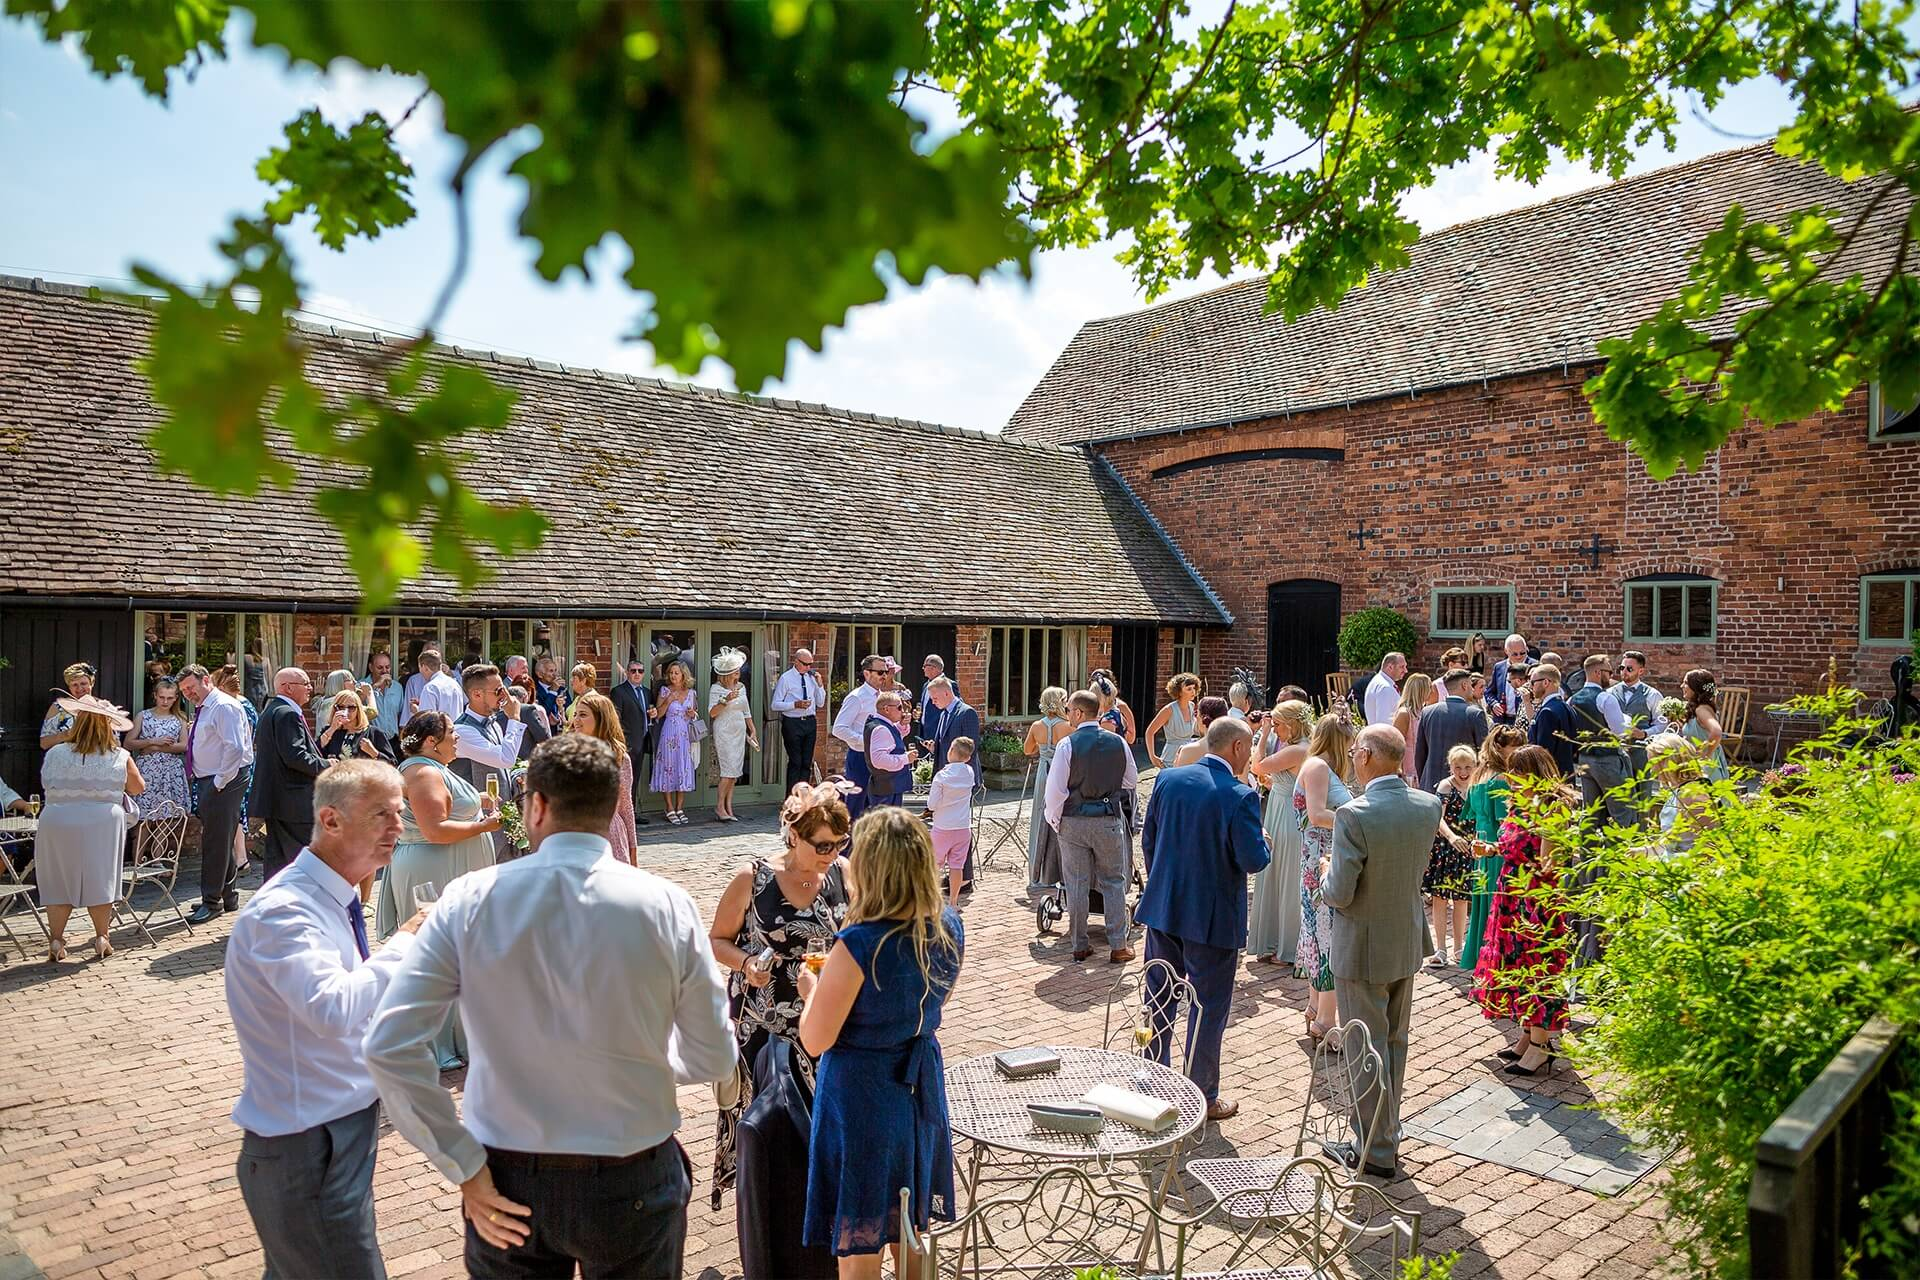 guests in the courtyard curradine barns worcestershire s2 images